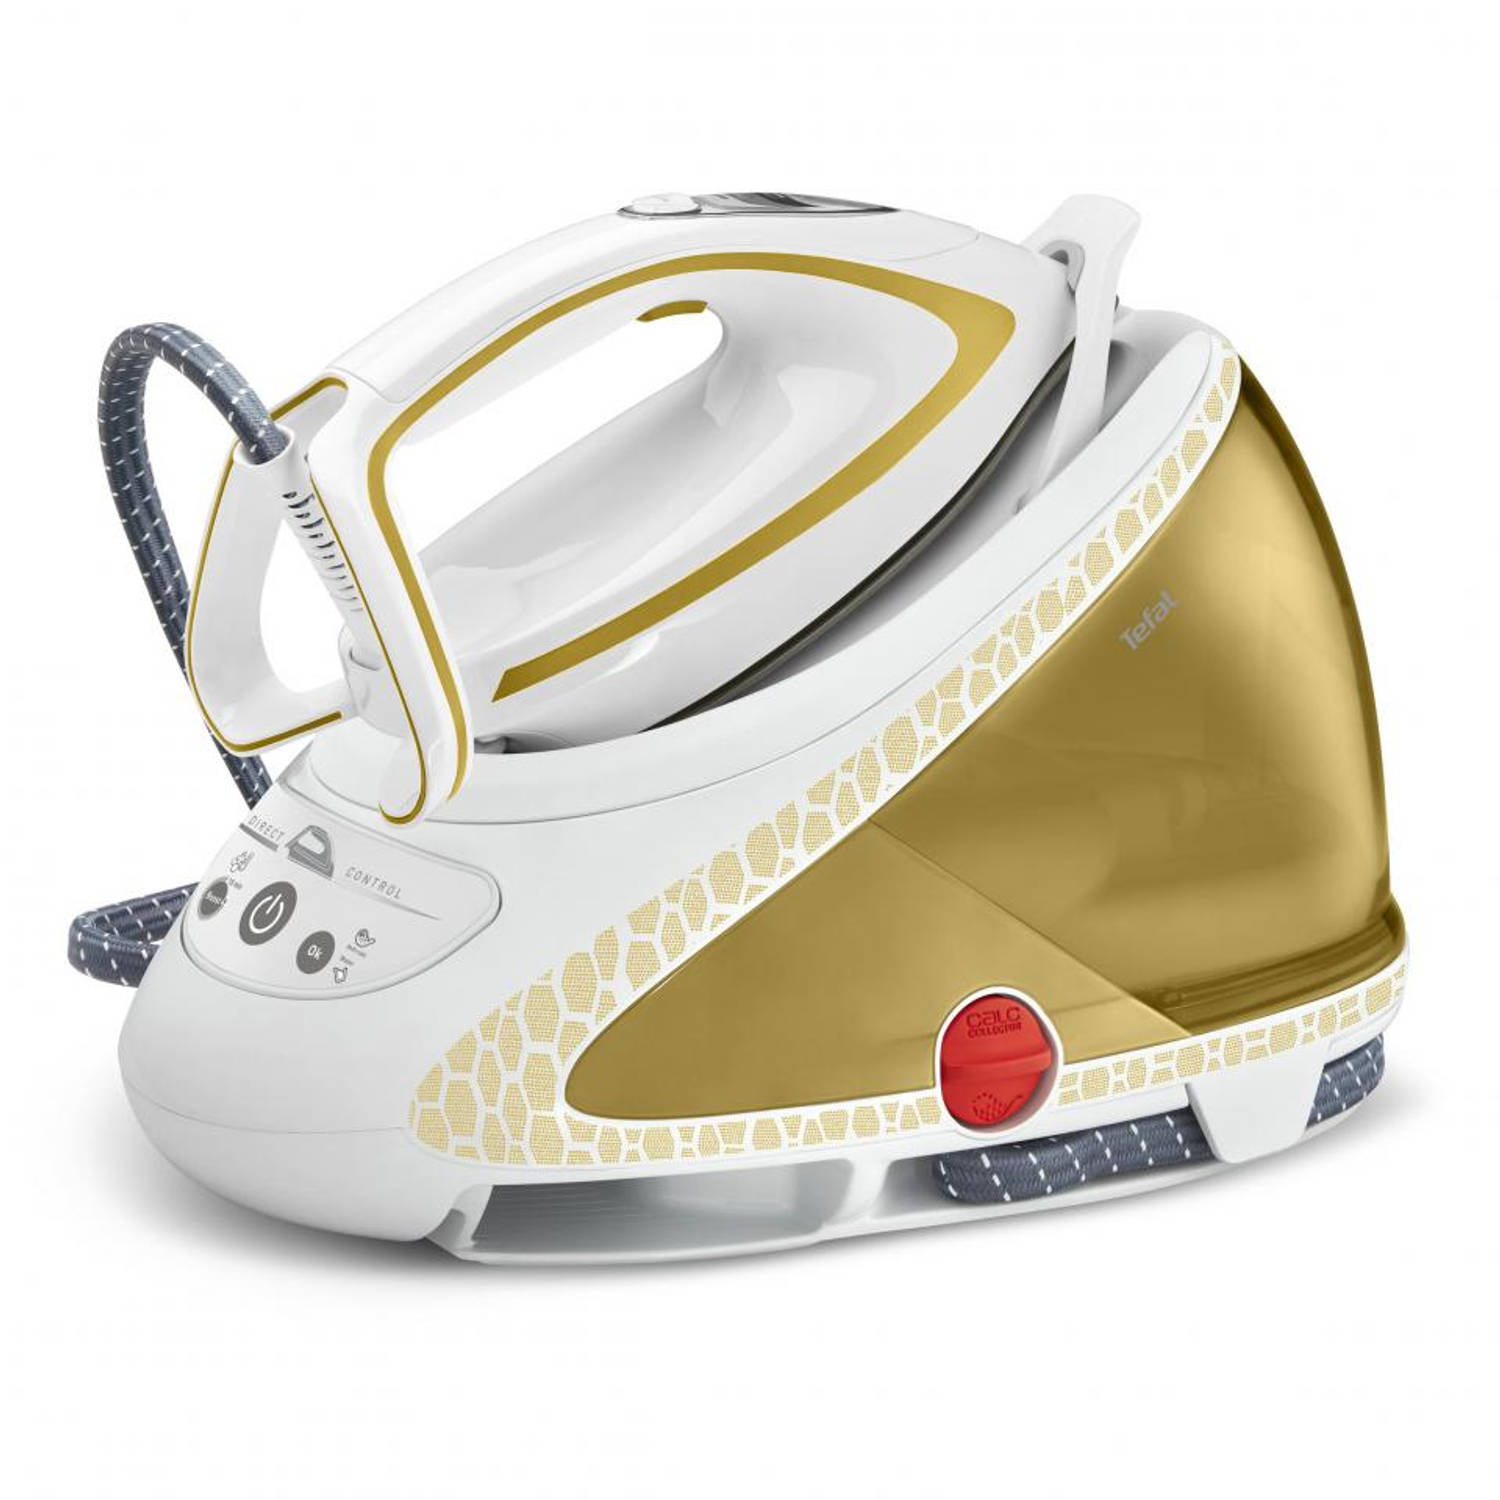 Tefal stoomgenerator Pro Express Ultimate Care GV9581